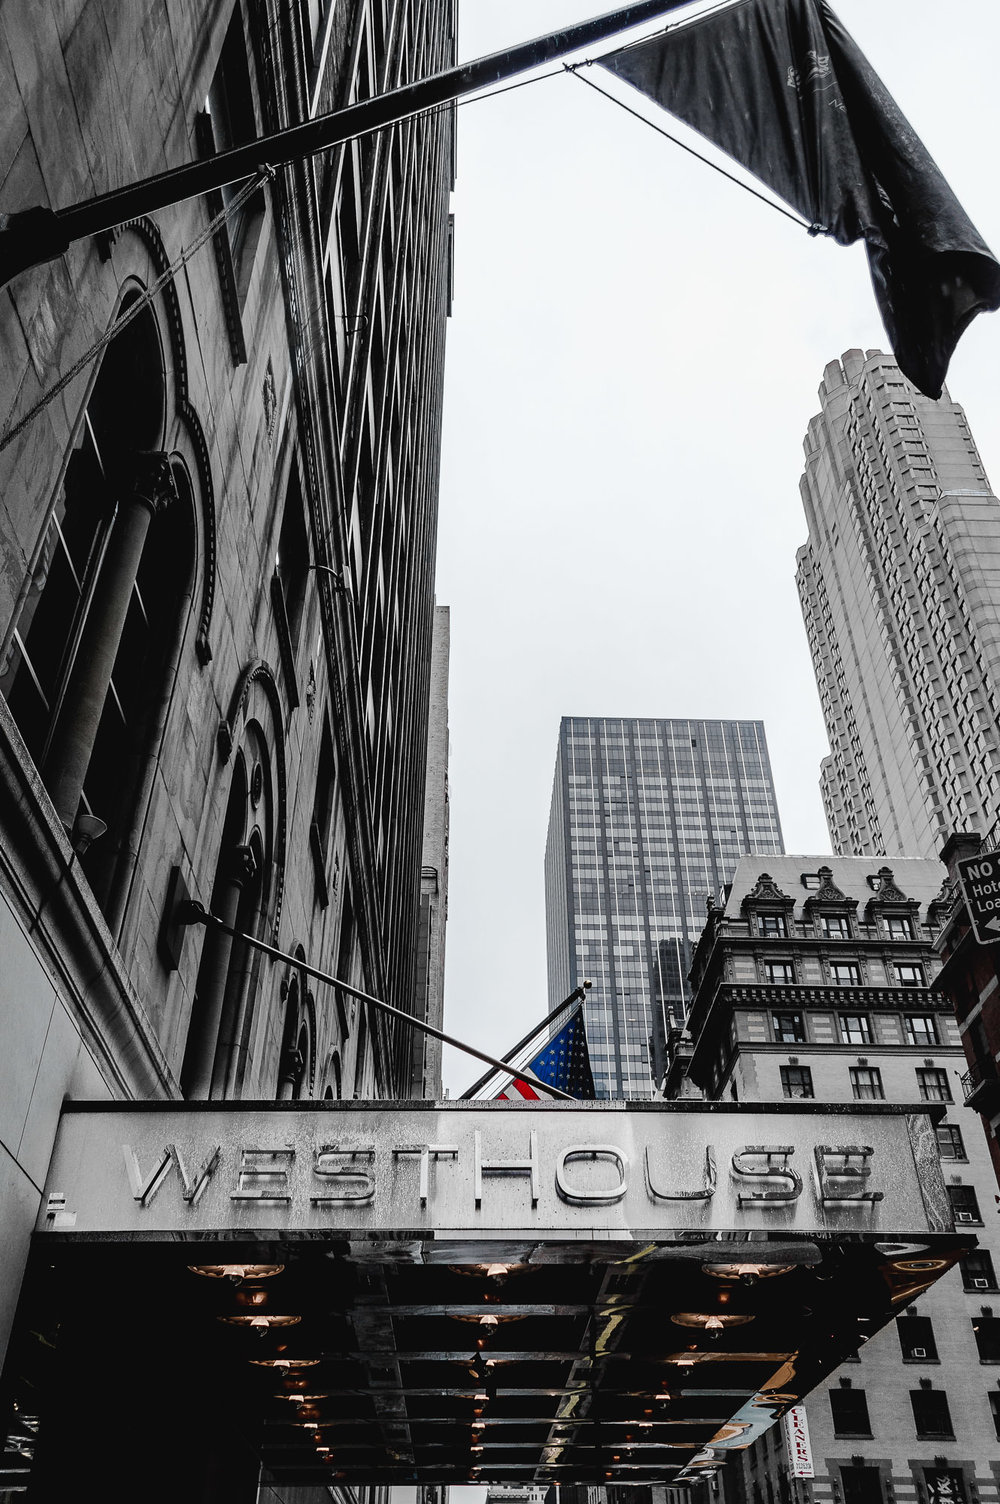 The WestHouse Hotel New York NYC